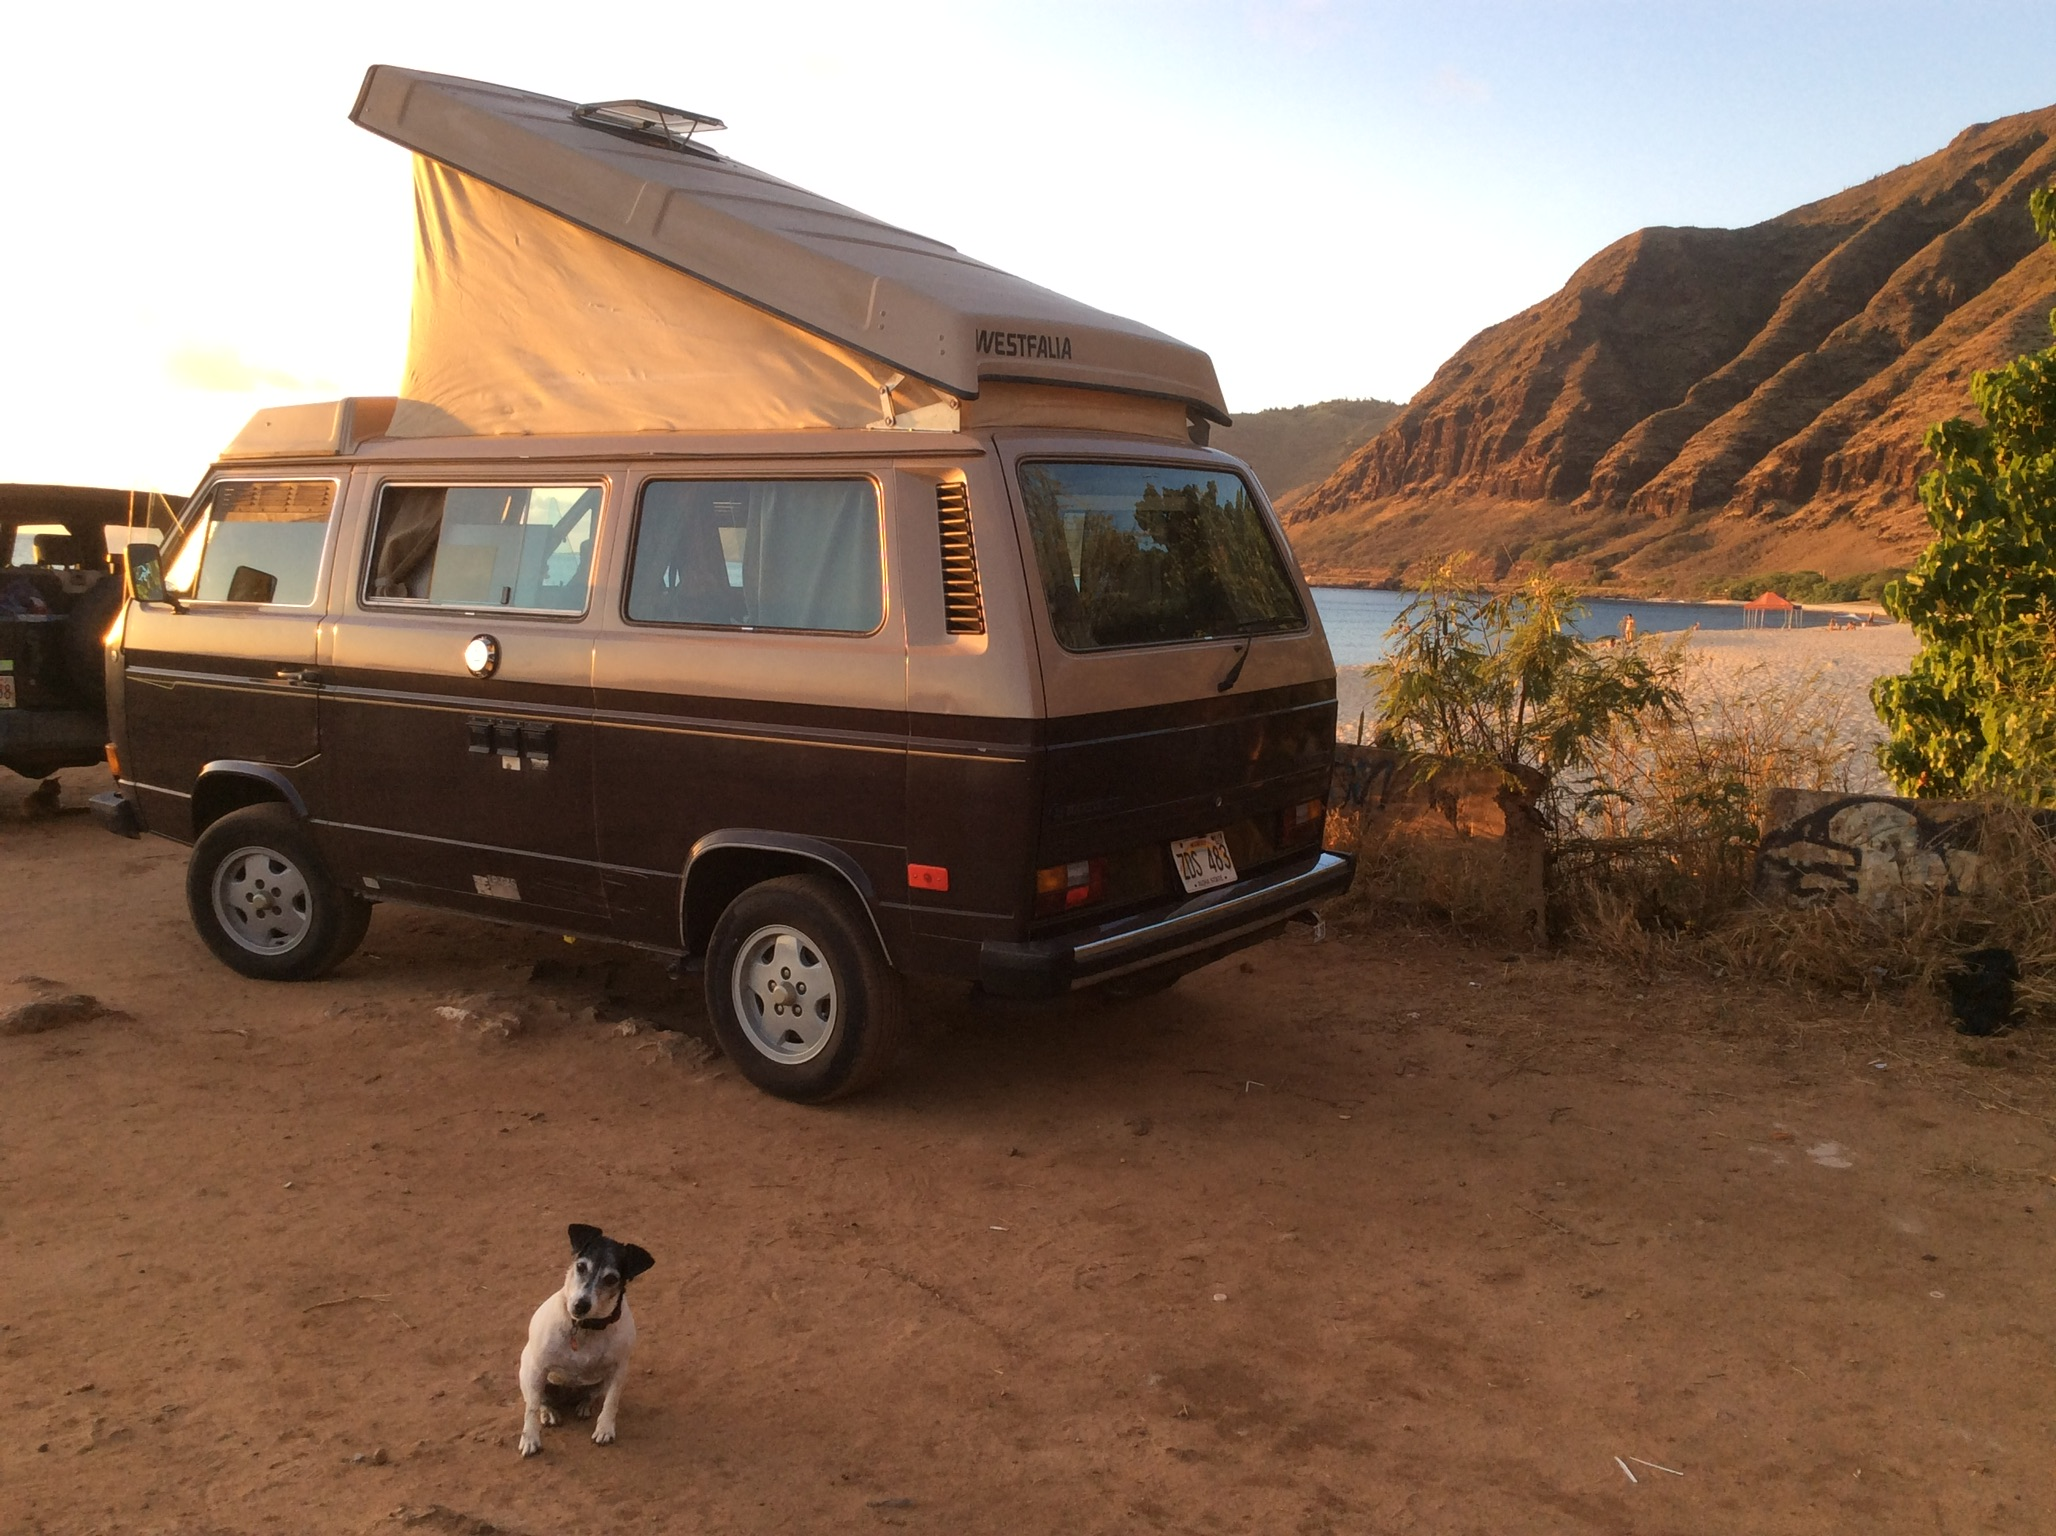 The pop-to can offer a covered, cool way to rest beside any of the great sites around O'ahu. Volkswagen Vanagon Westfalia 1984